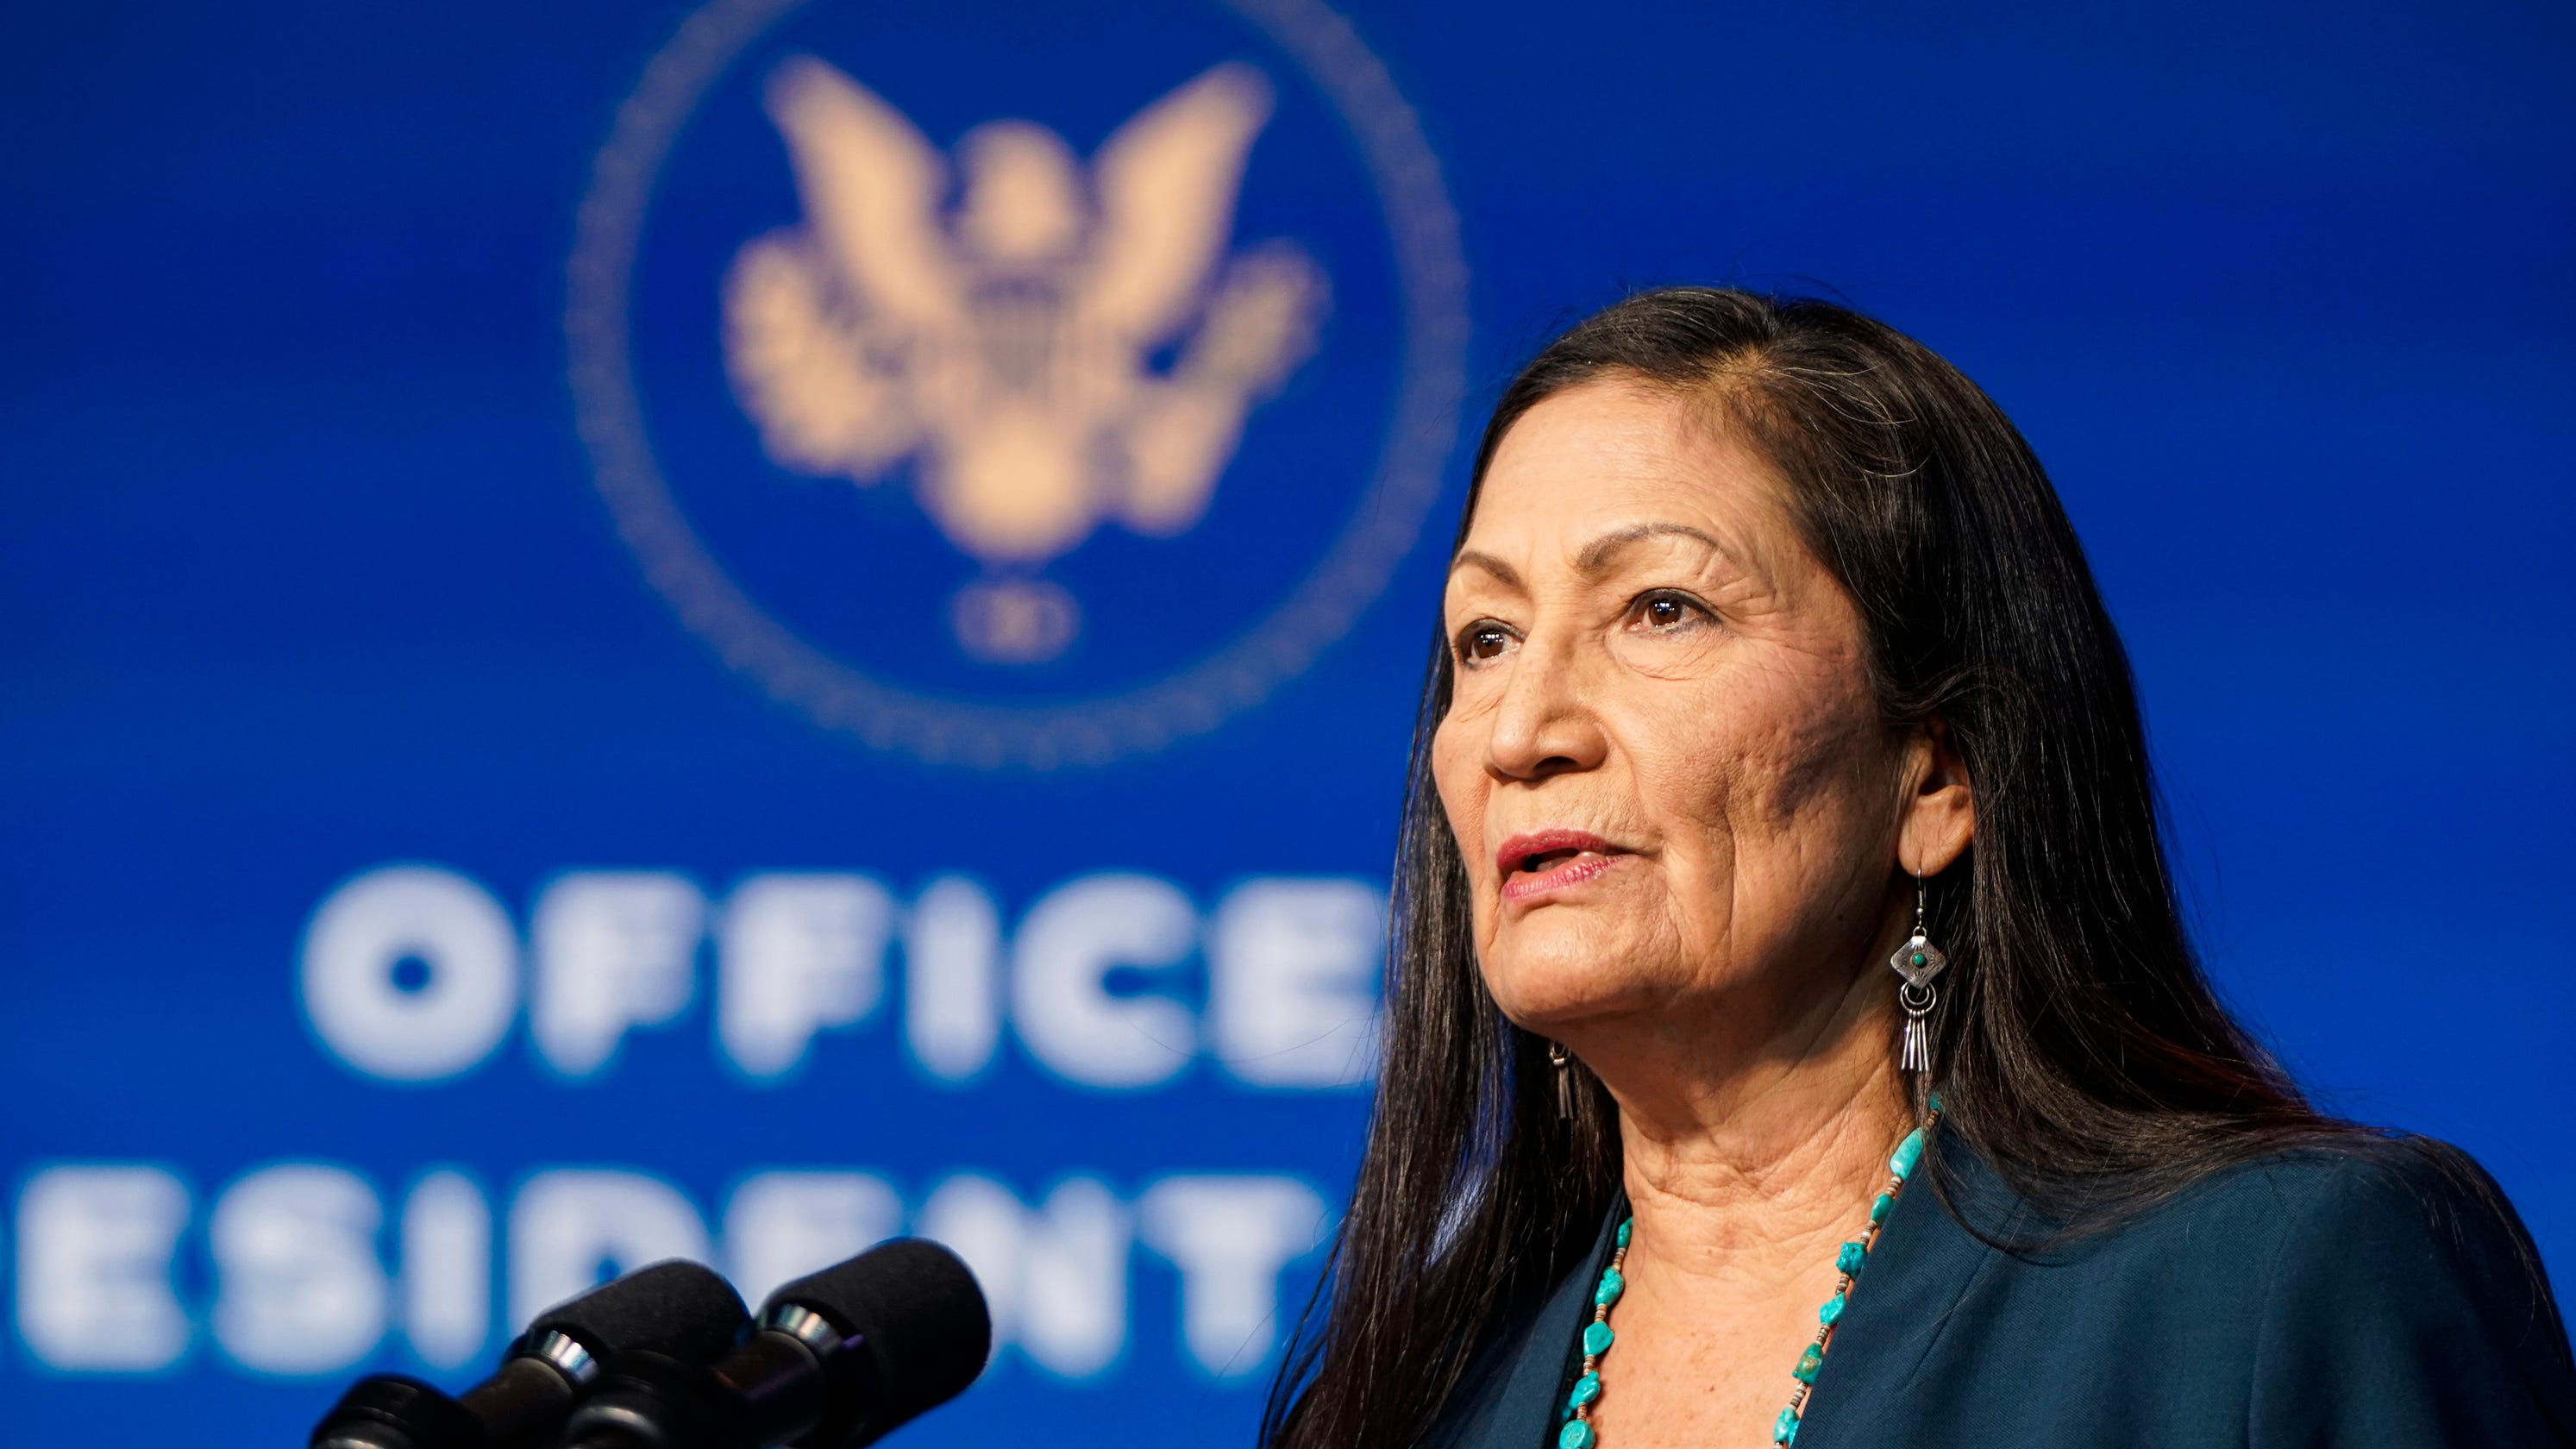 Sen. Mark Kelly joins Arizona tribes in support of Deb Haaland's Interior secretary confirmation